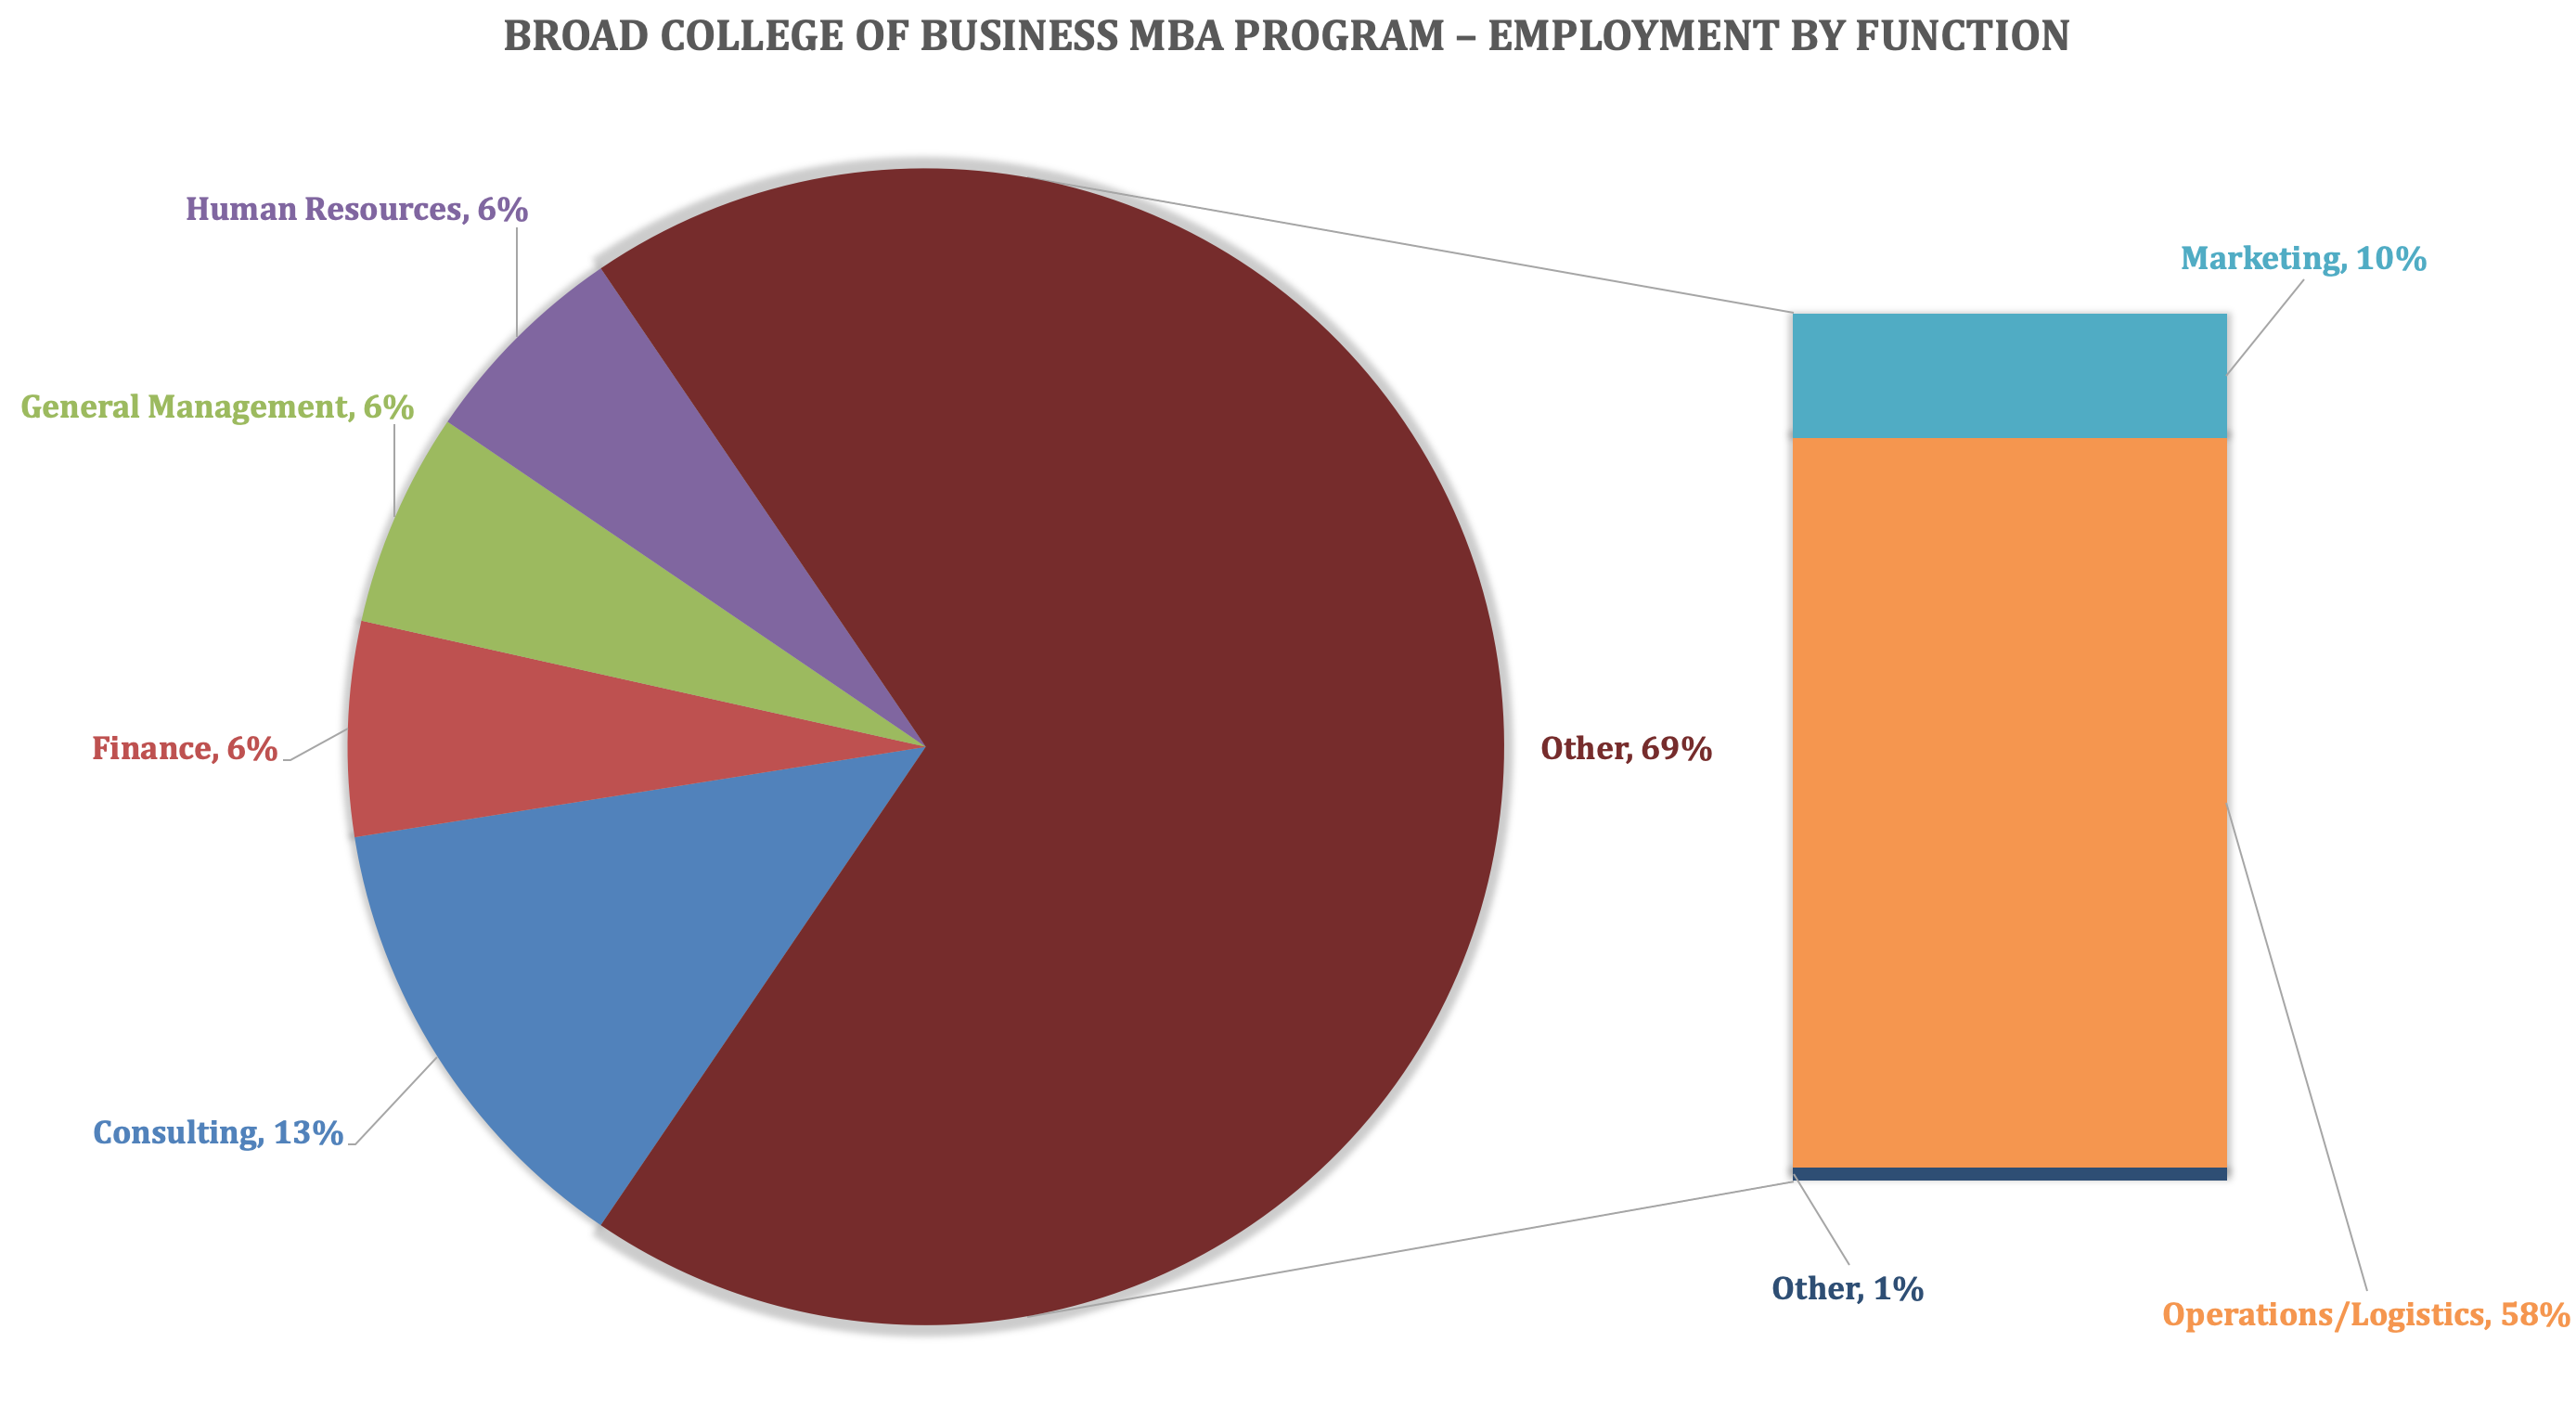 MSU MBA Program - Broad College of Business - Employment by Function